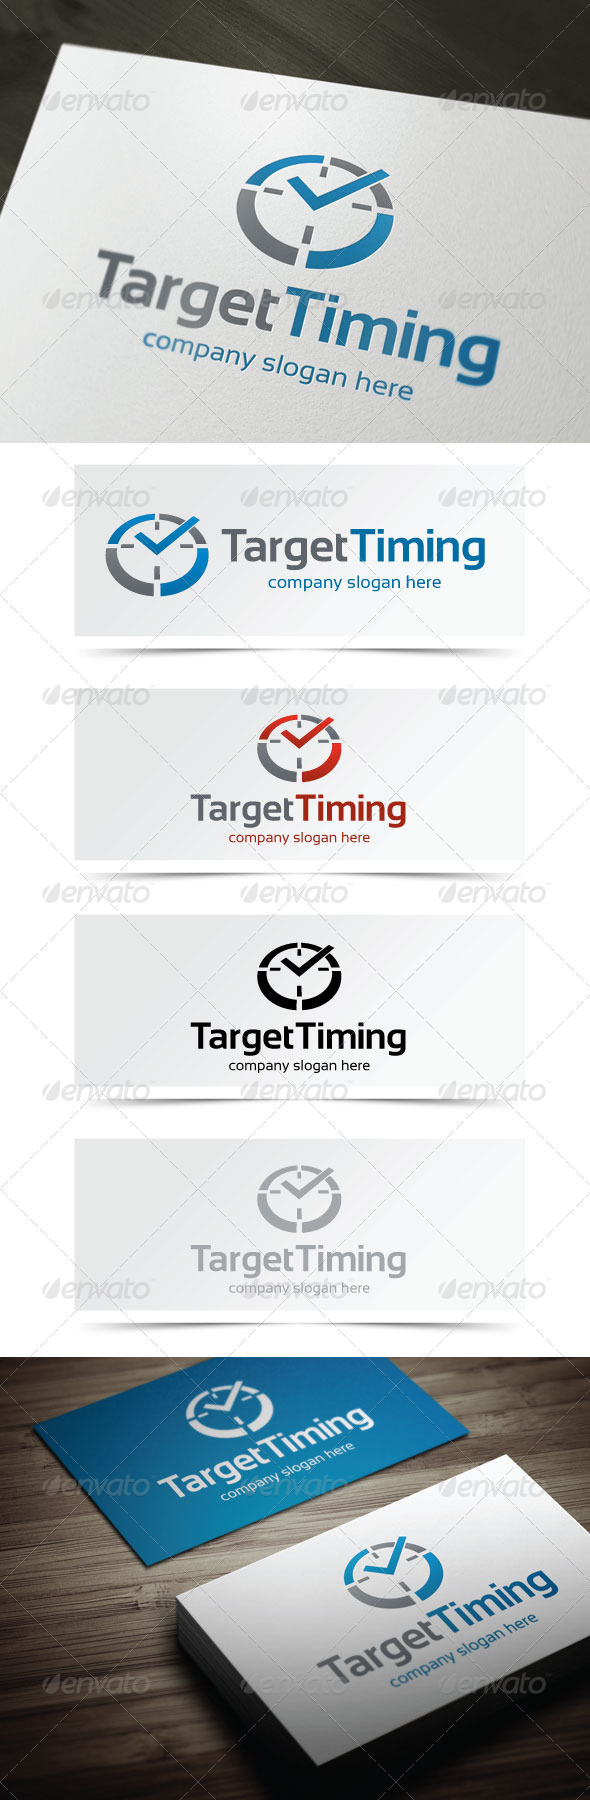 GraphicRiver Target Timing 5262063